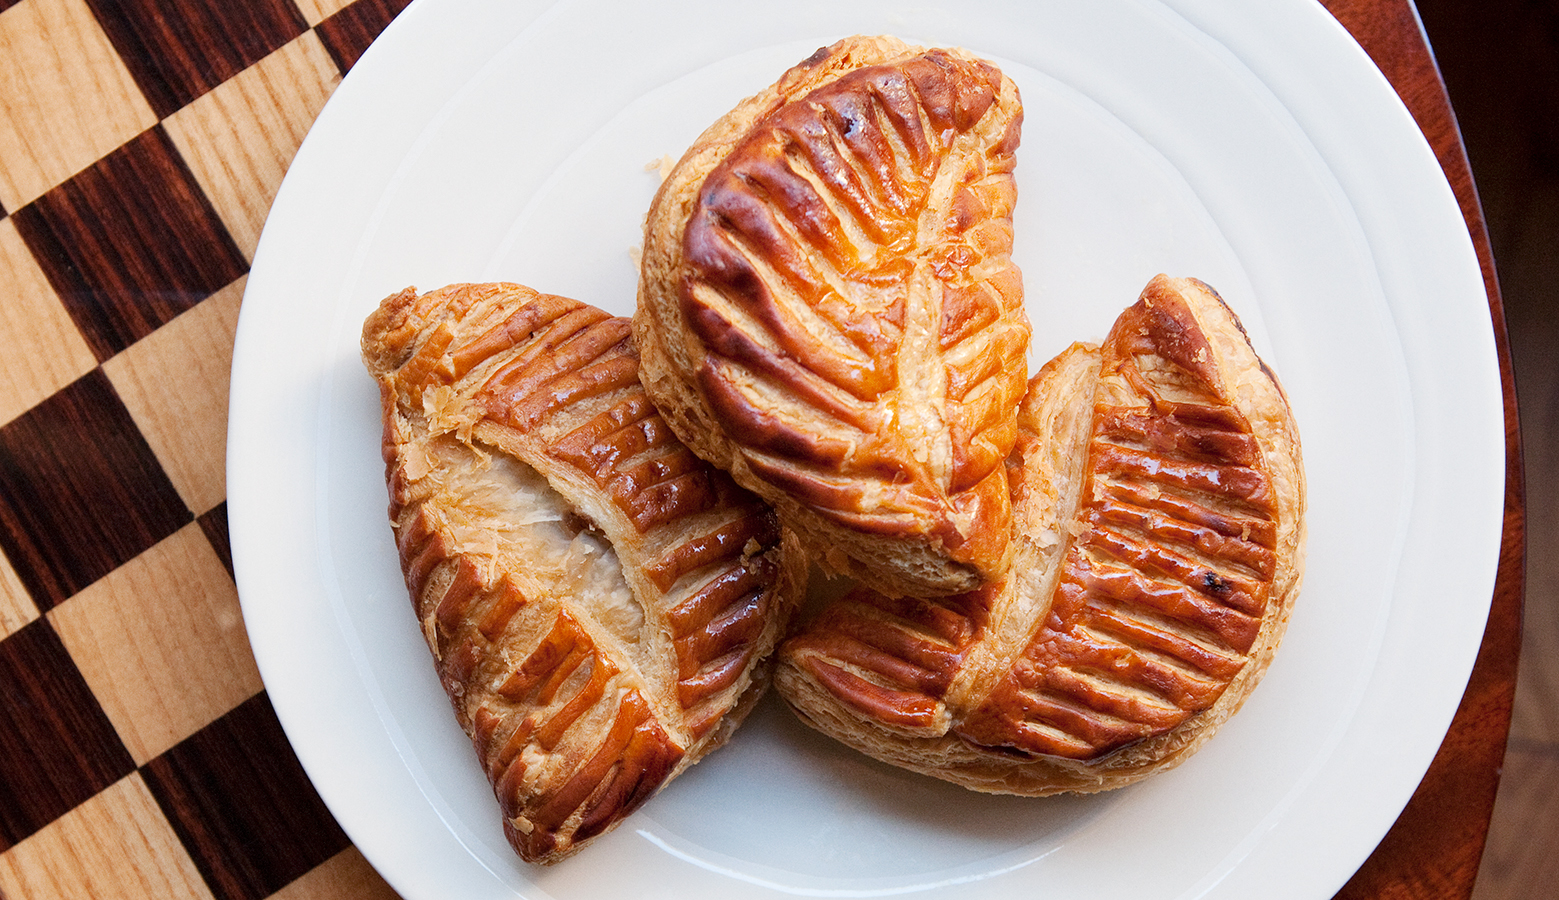 Apple Turnover Breakfast • Paris, France